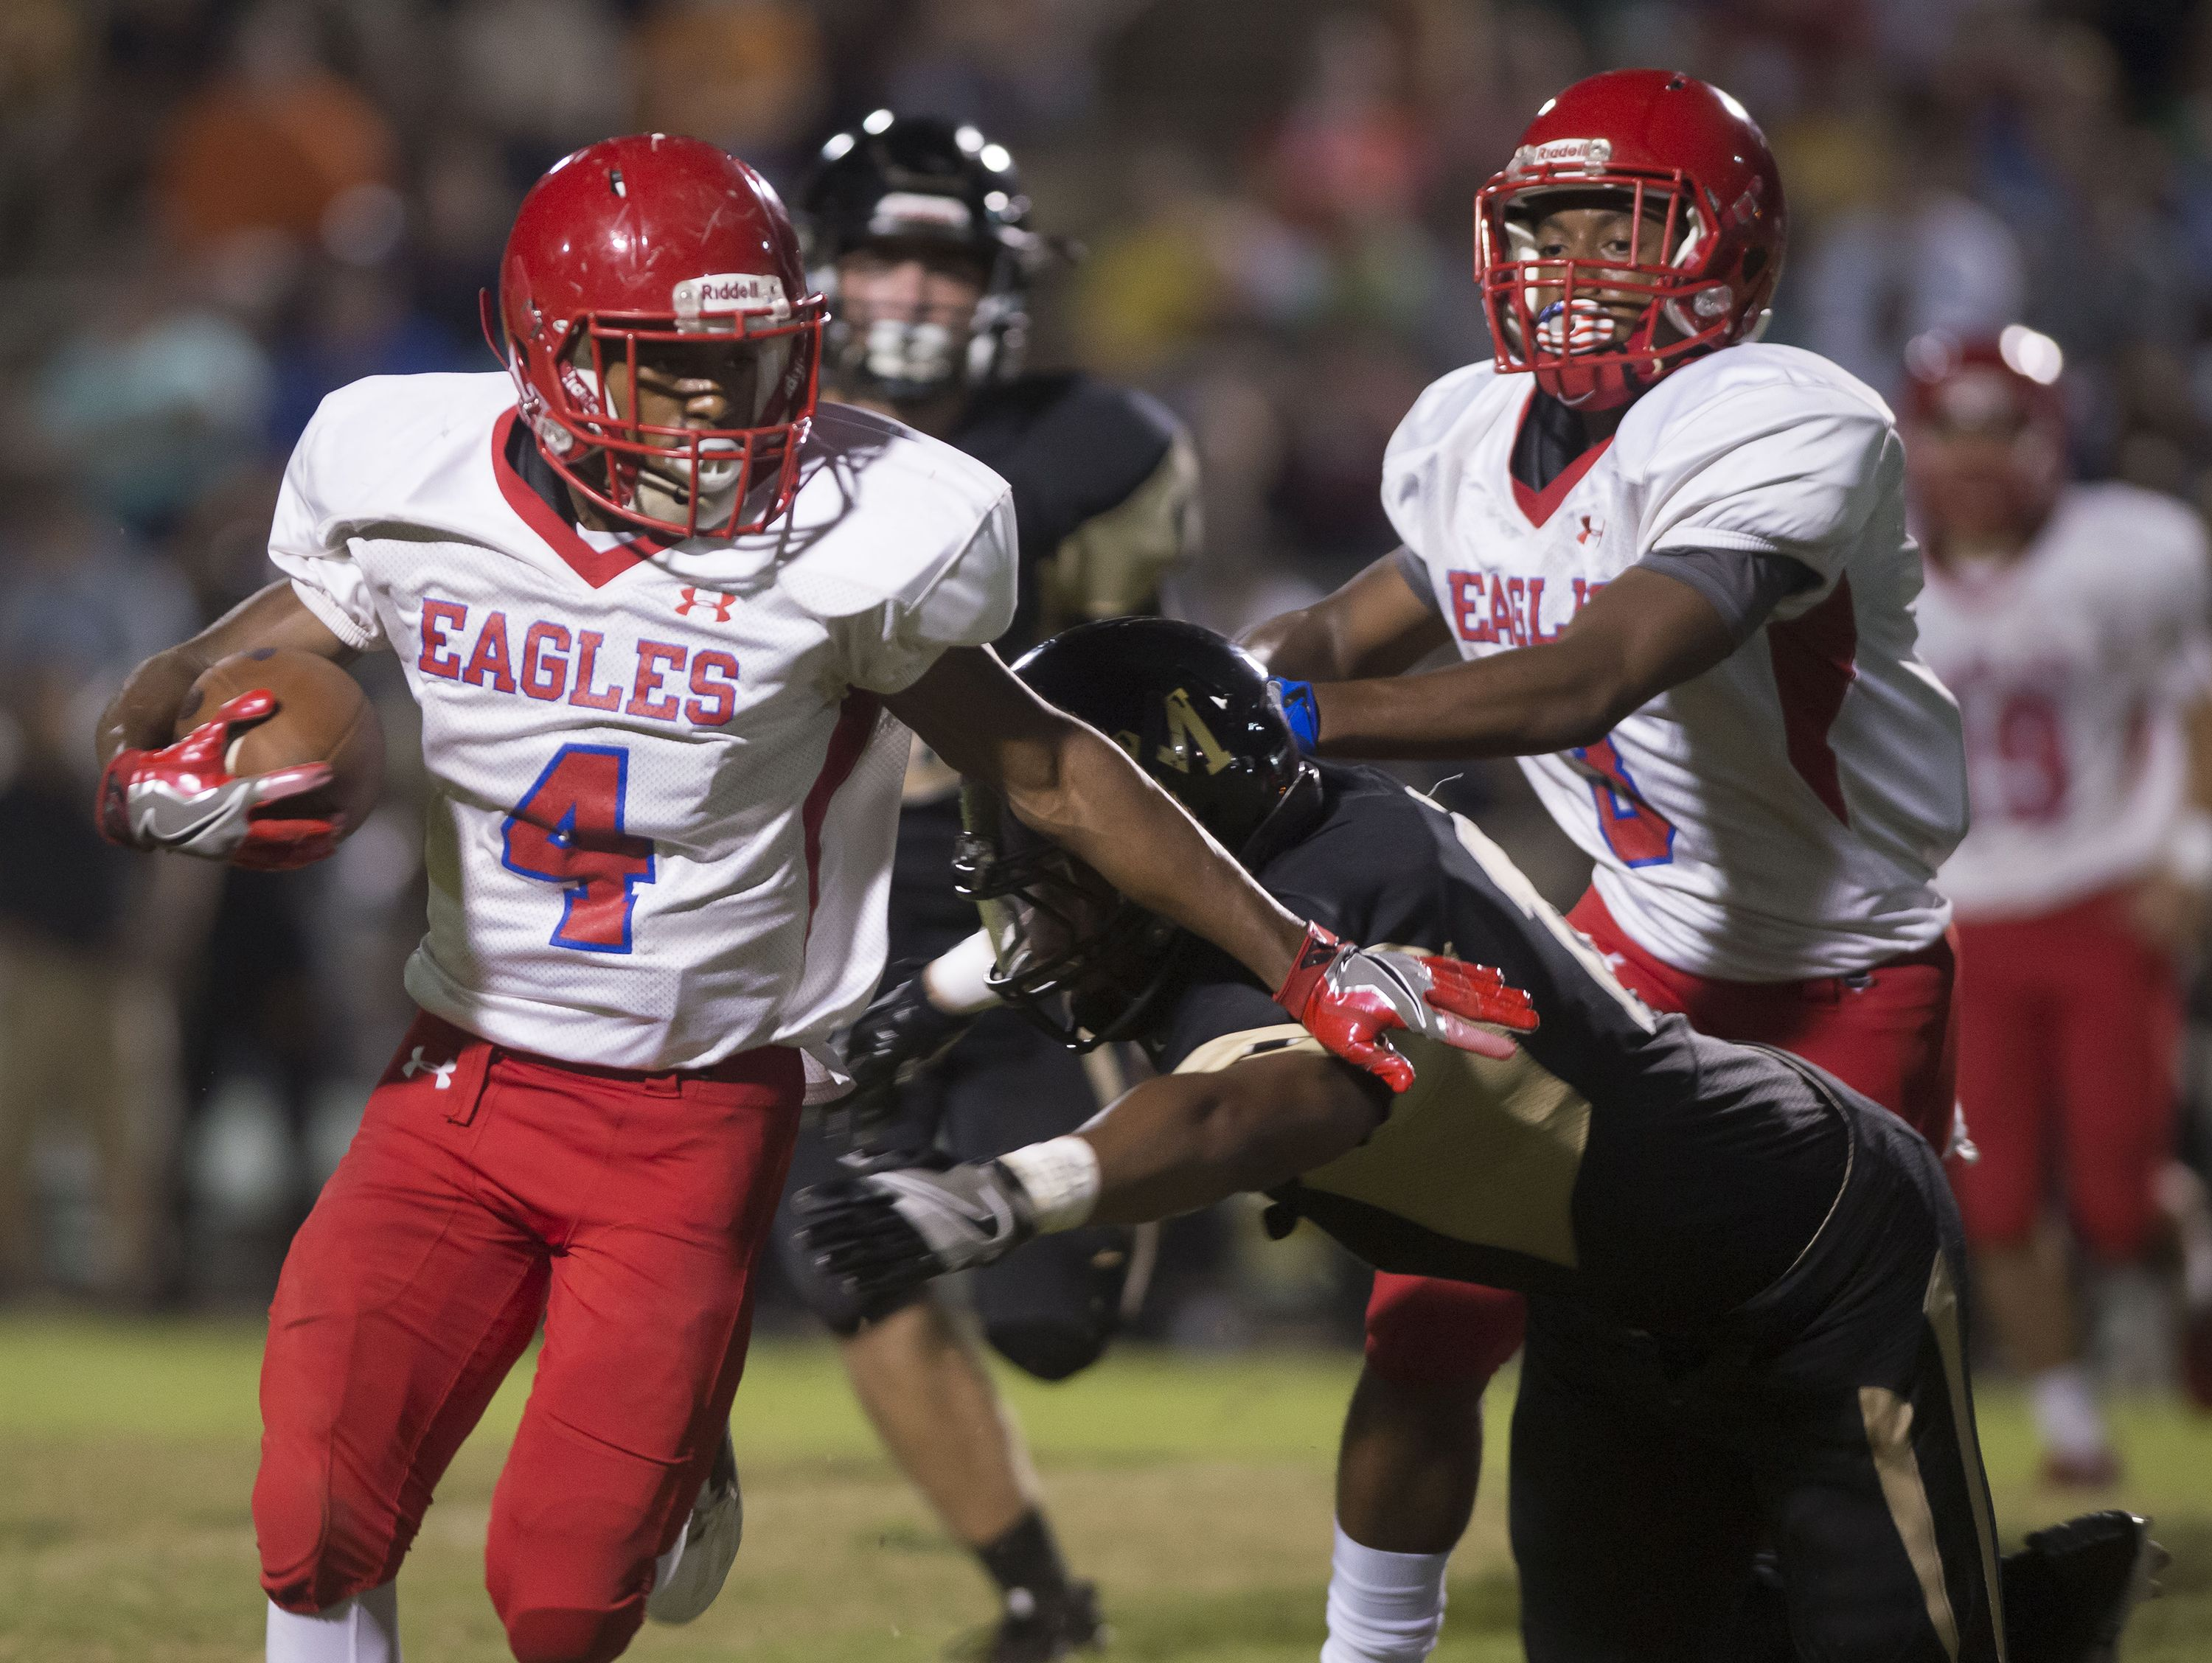 Pine Forest High running back, Ladarius Wiggins, (No. 4) tries to break the tackle of a Milton High defender during Friday night's game against the Panthers.